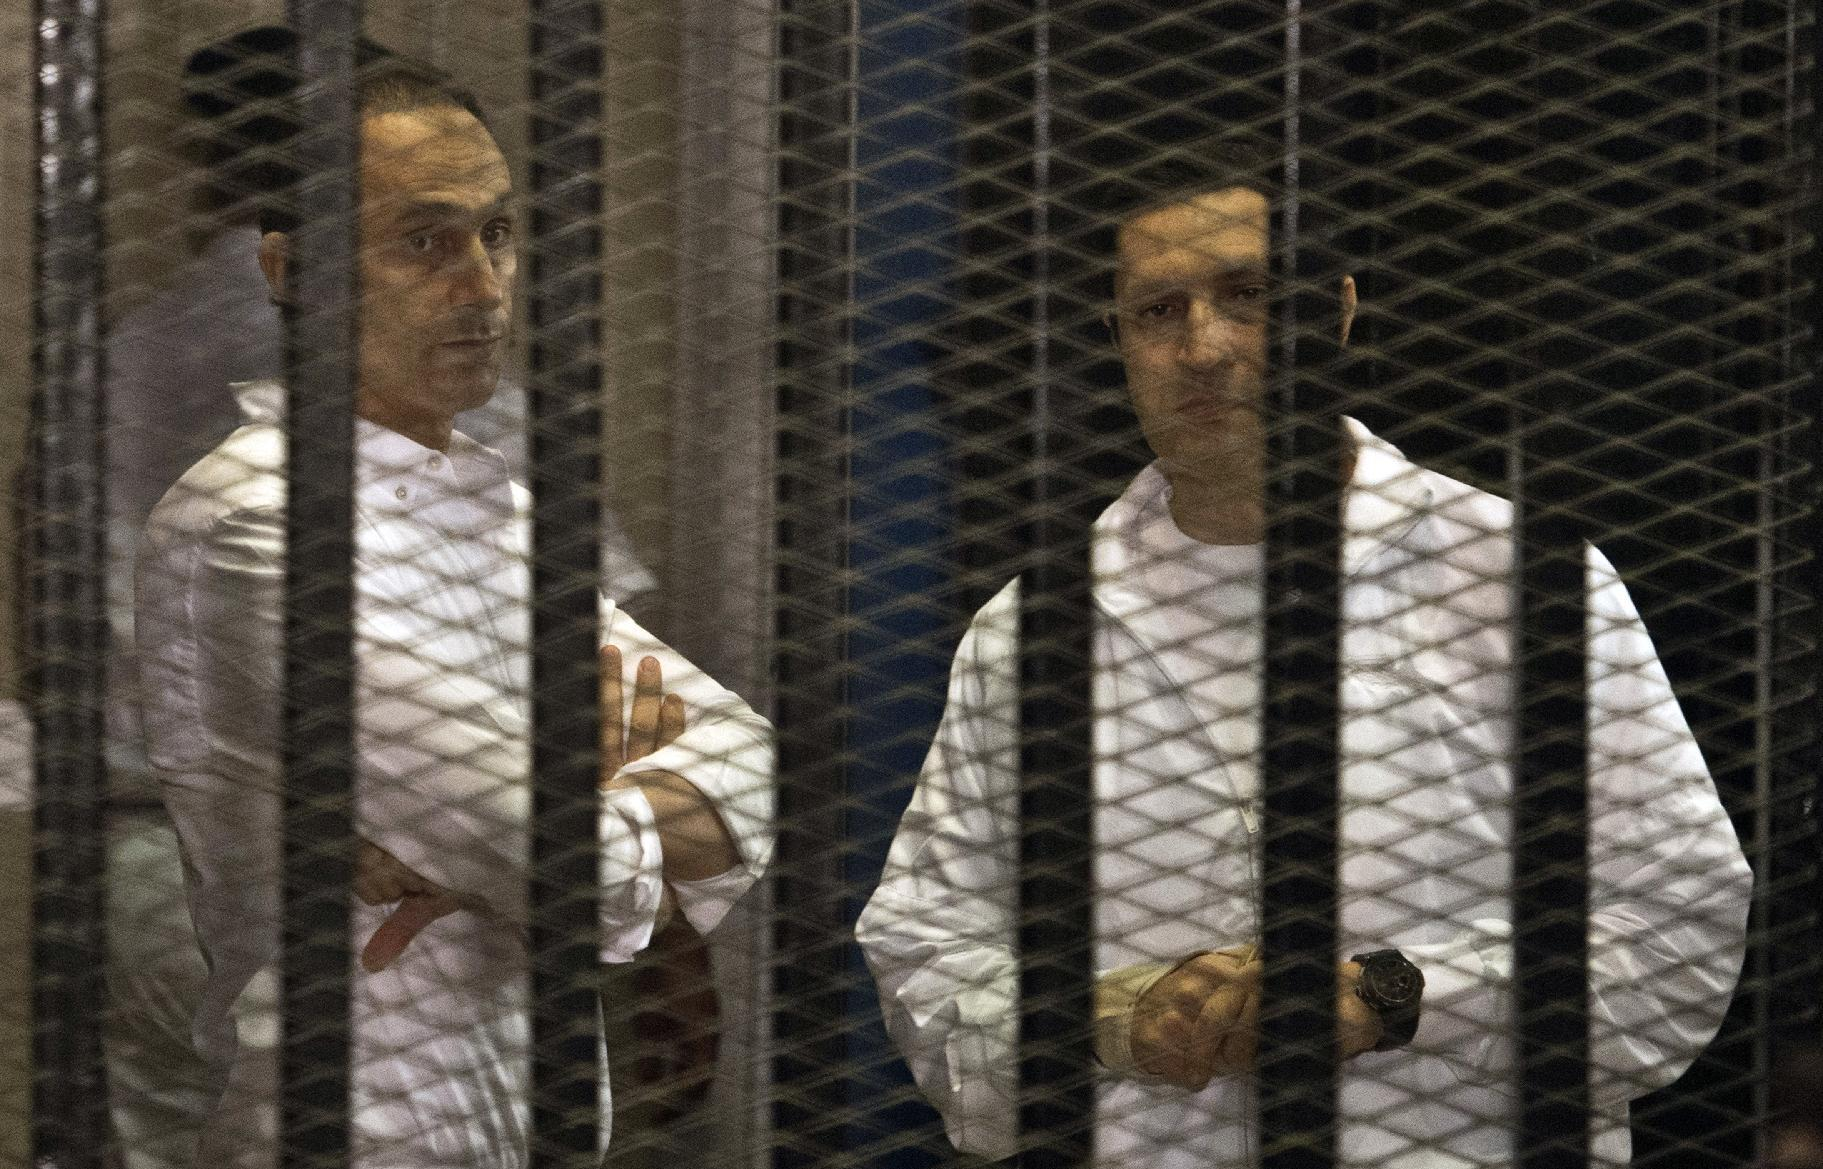 Mubarak sons out of jail pending retrial: minister